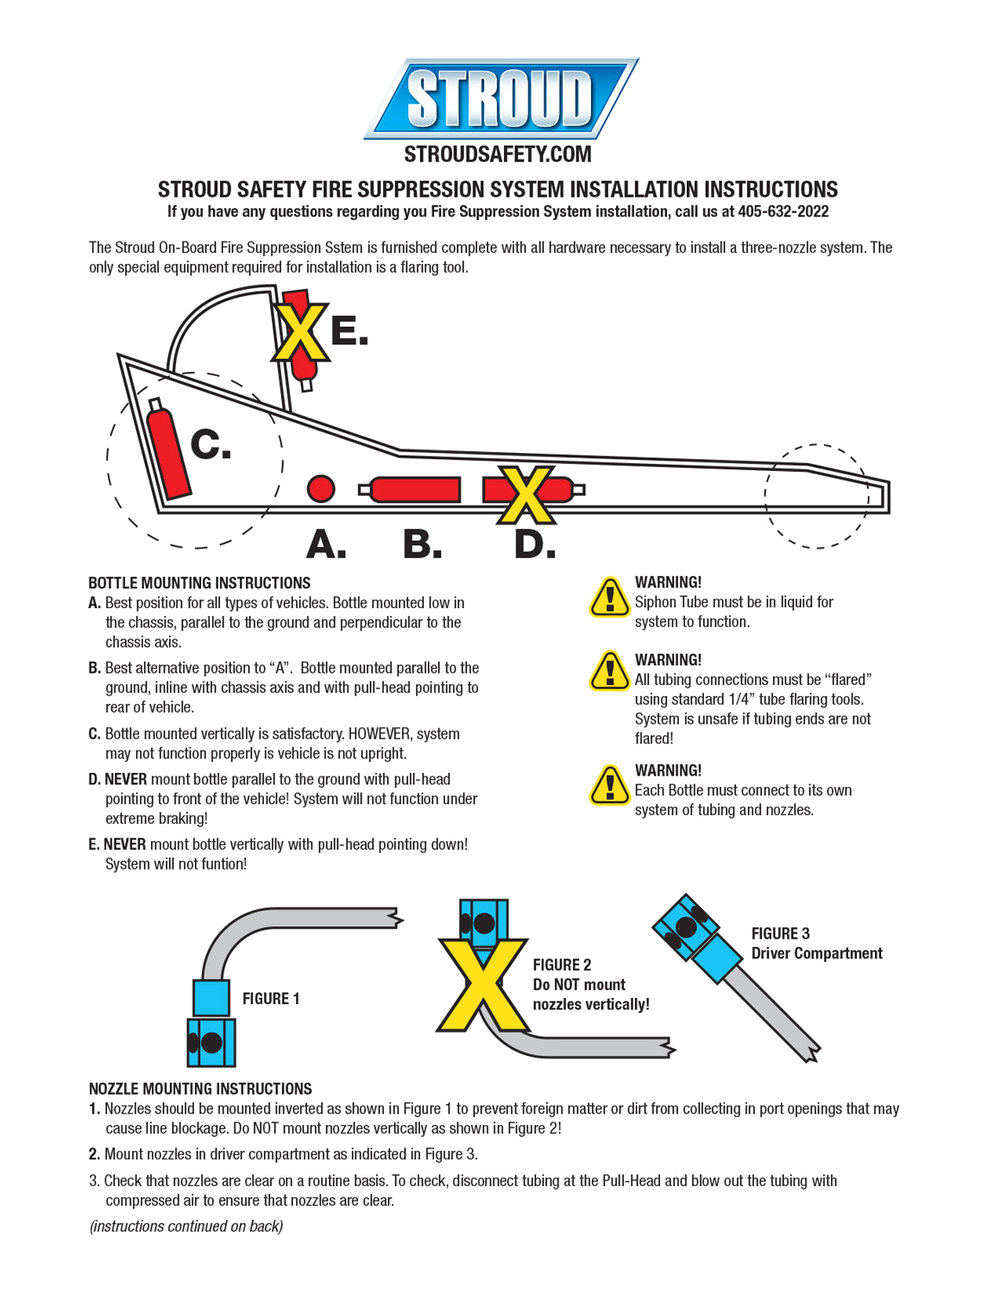 installtion instructions for fire suppression systems